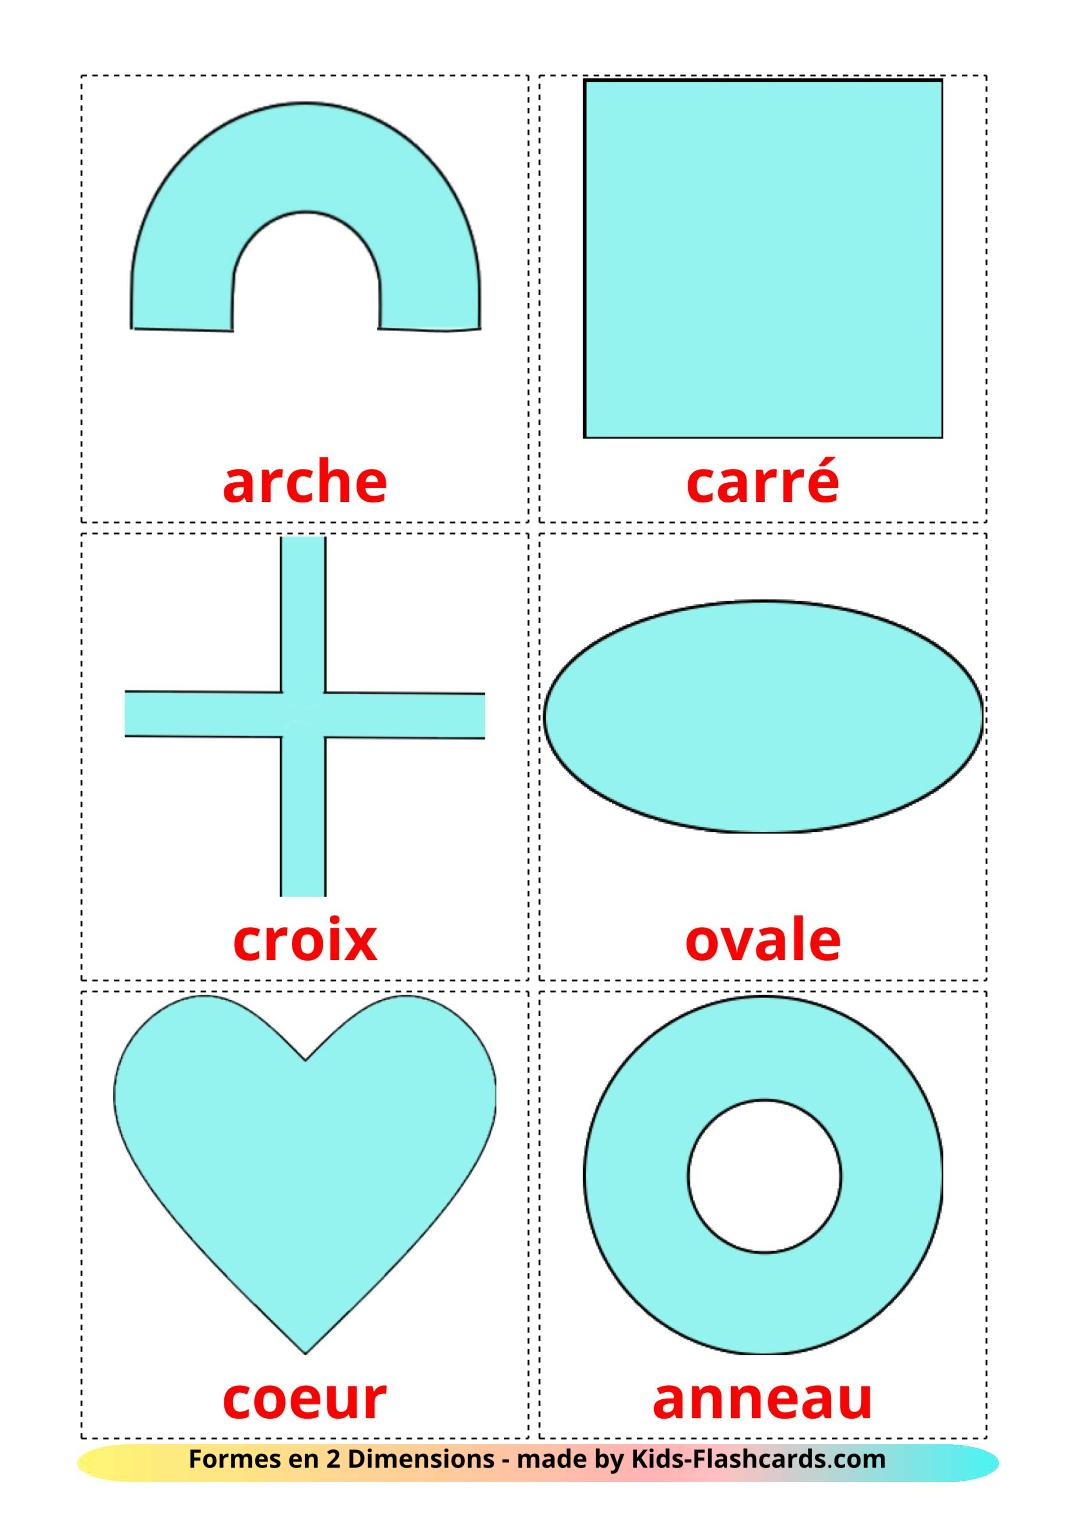 2D Shapes - 35 Free Printable french Flashcards